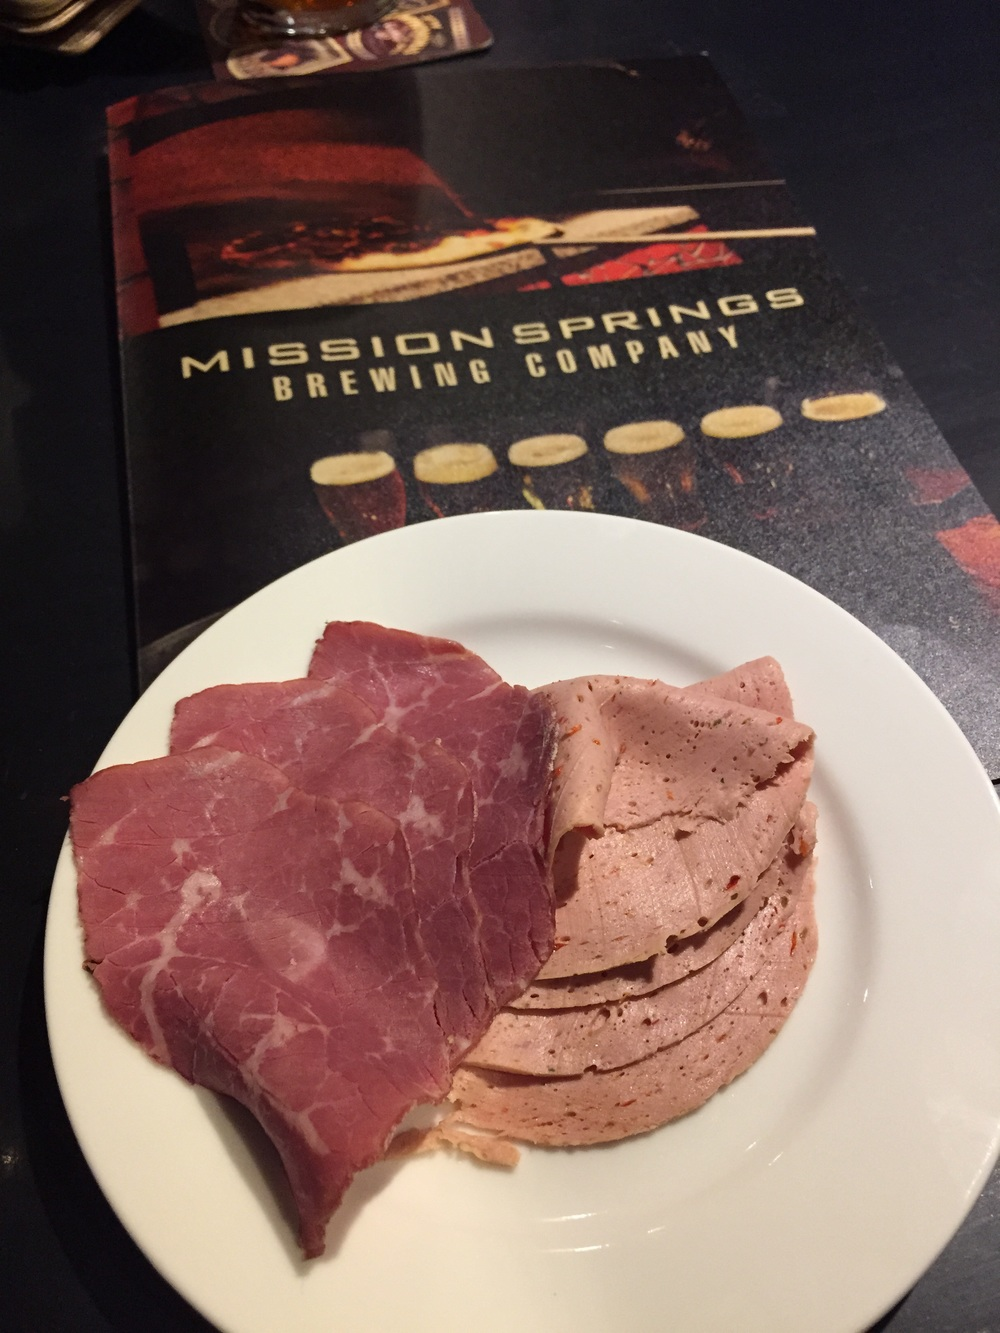 The owner brought us out a few slices of pastrami and pimento loaf cold cuts to try. These were DELICIOUS! I definitely want to come back to try a Meili Platter or one of many sandwiches they had with these great quality deli cut meats. The pastrami wasn't too salty which was a pleasant surprise!